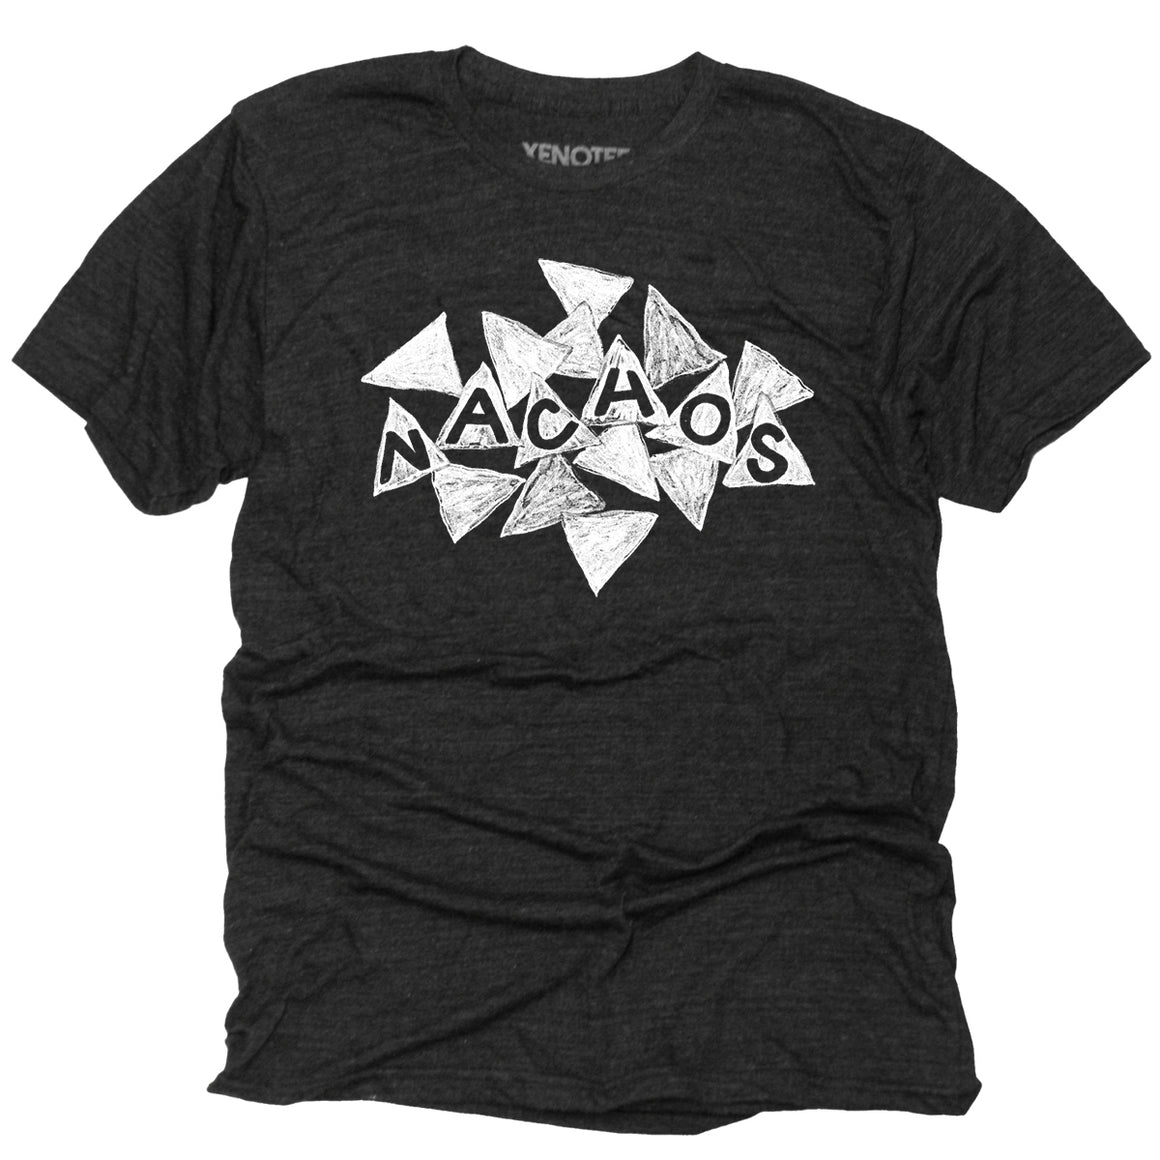 Nachos T Shirt by Xenotees